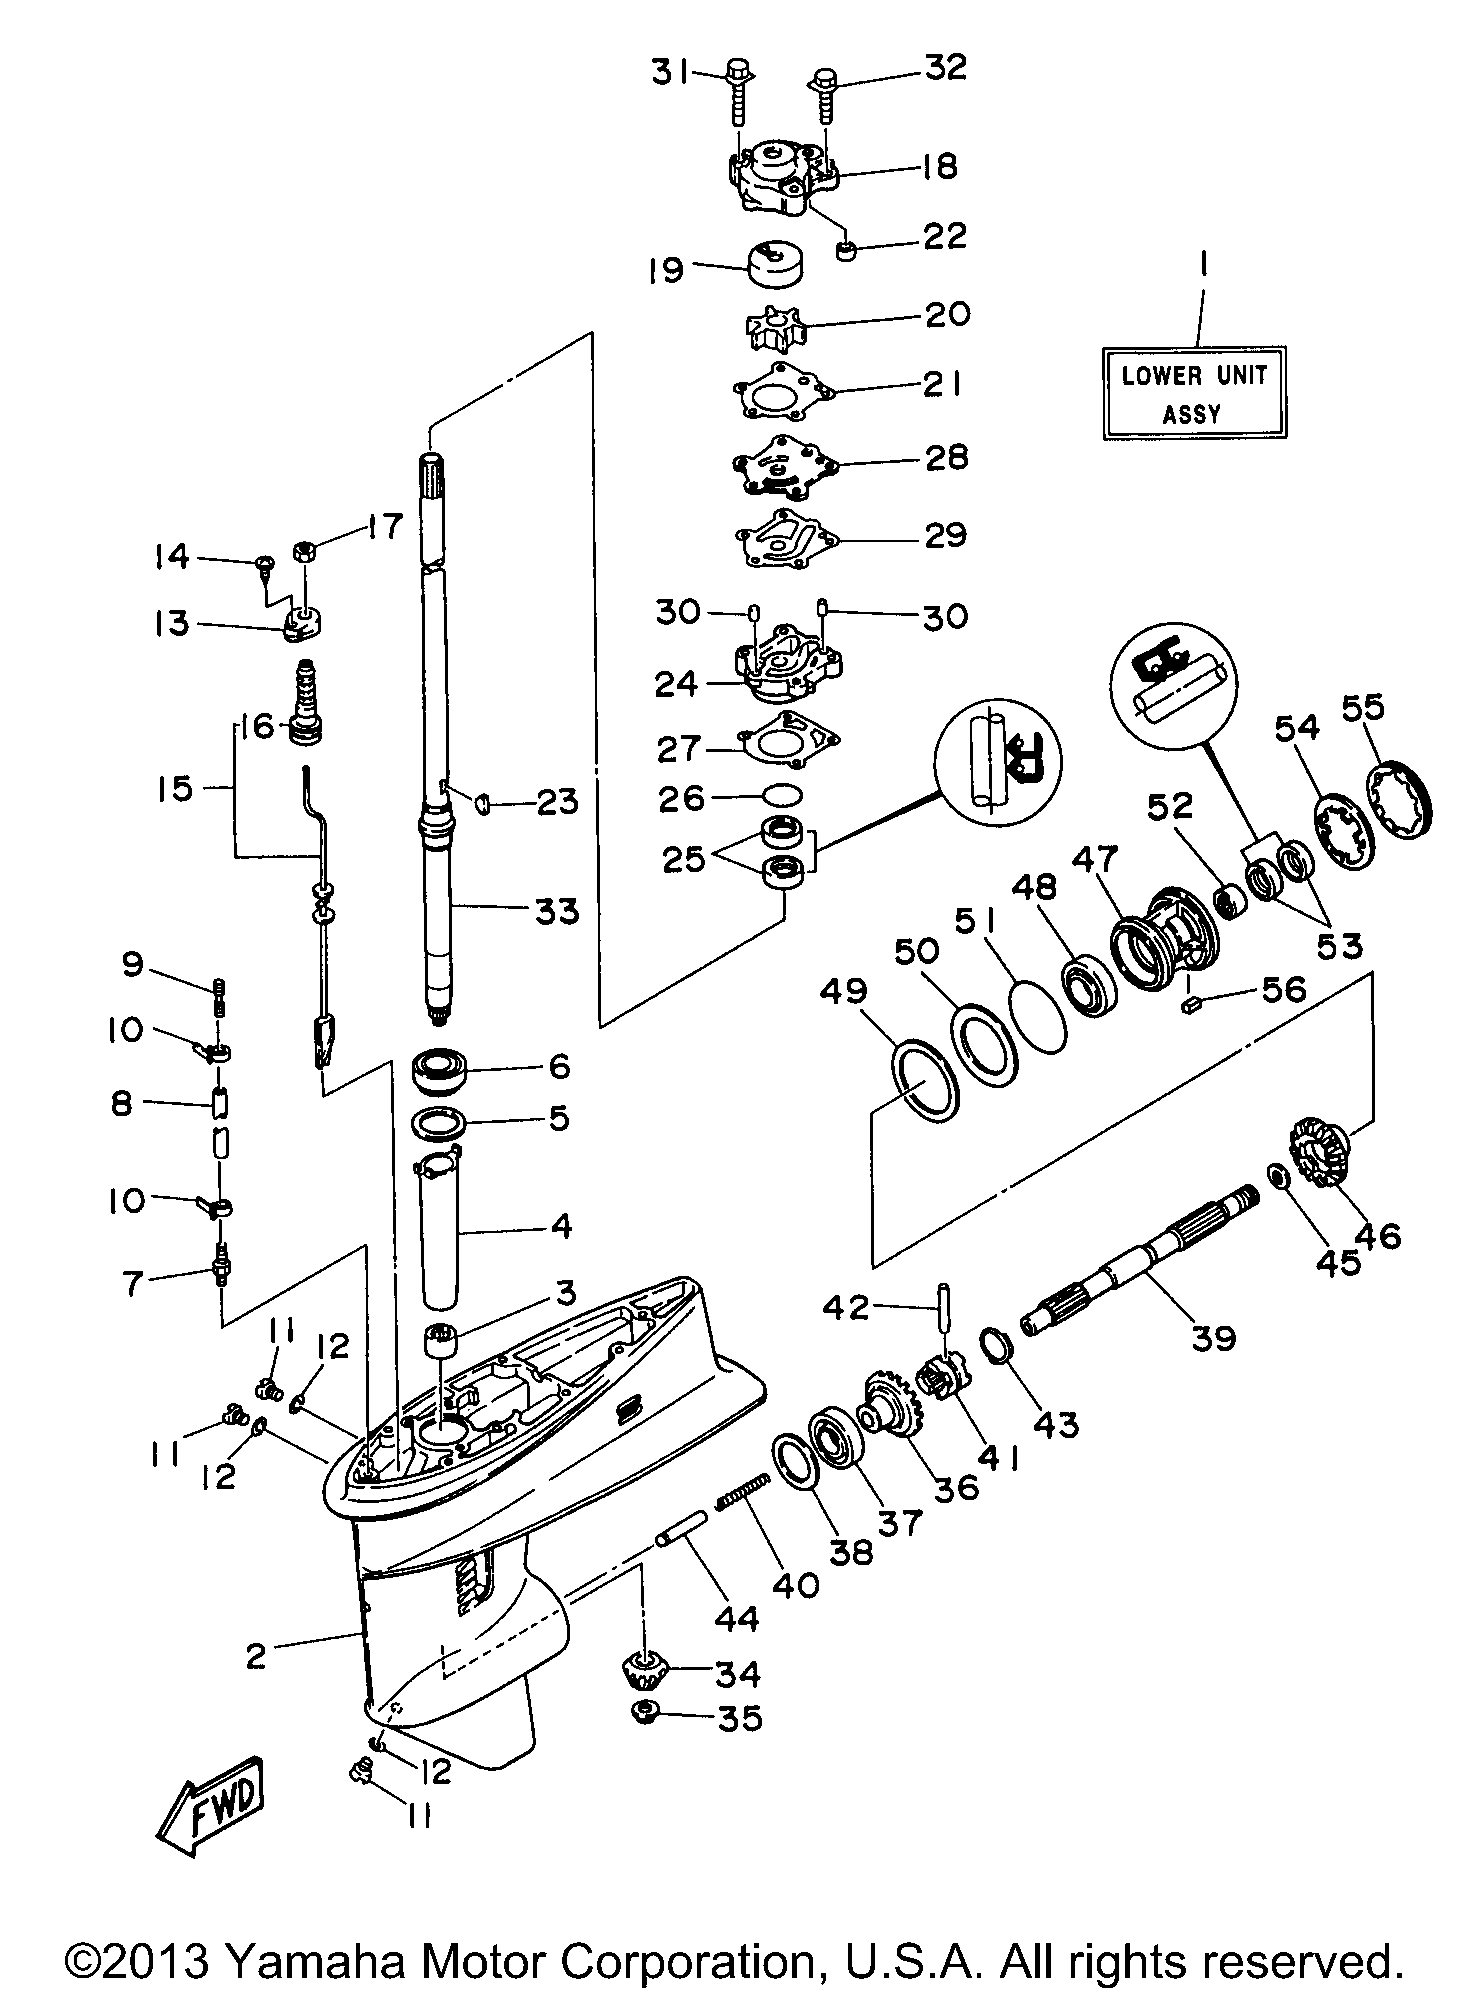 Yamaha 6j8 Wiring Diagram Reveolution Of 30 Hp Outboard 30esrw Lower Casing Drive 1 Rh Vansoutboardparts Com 90